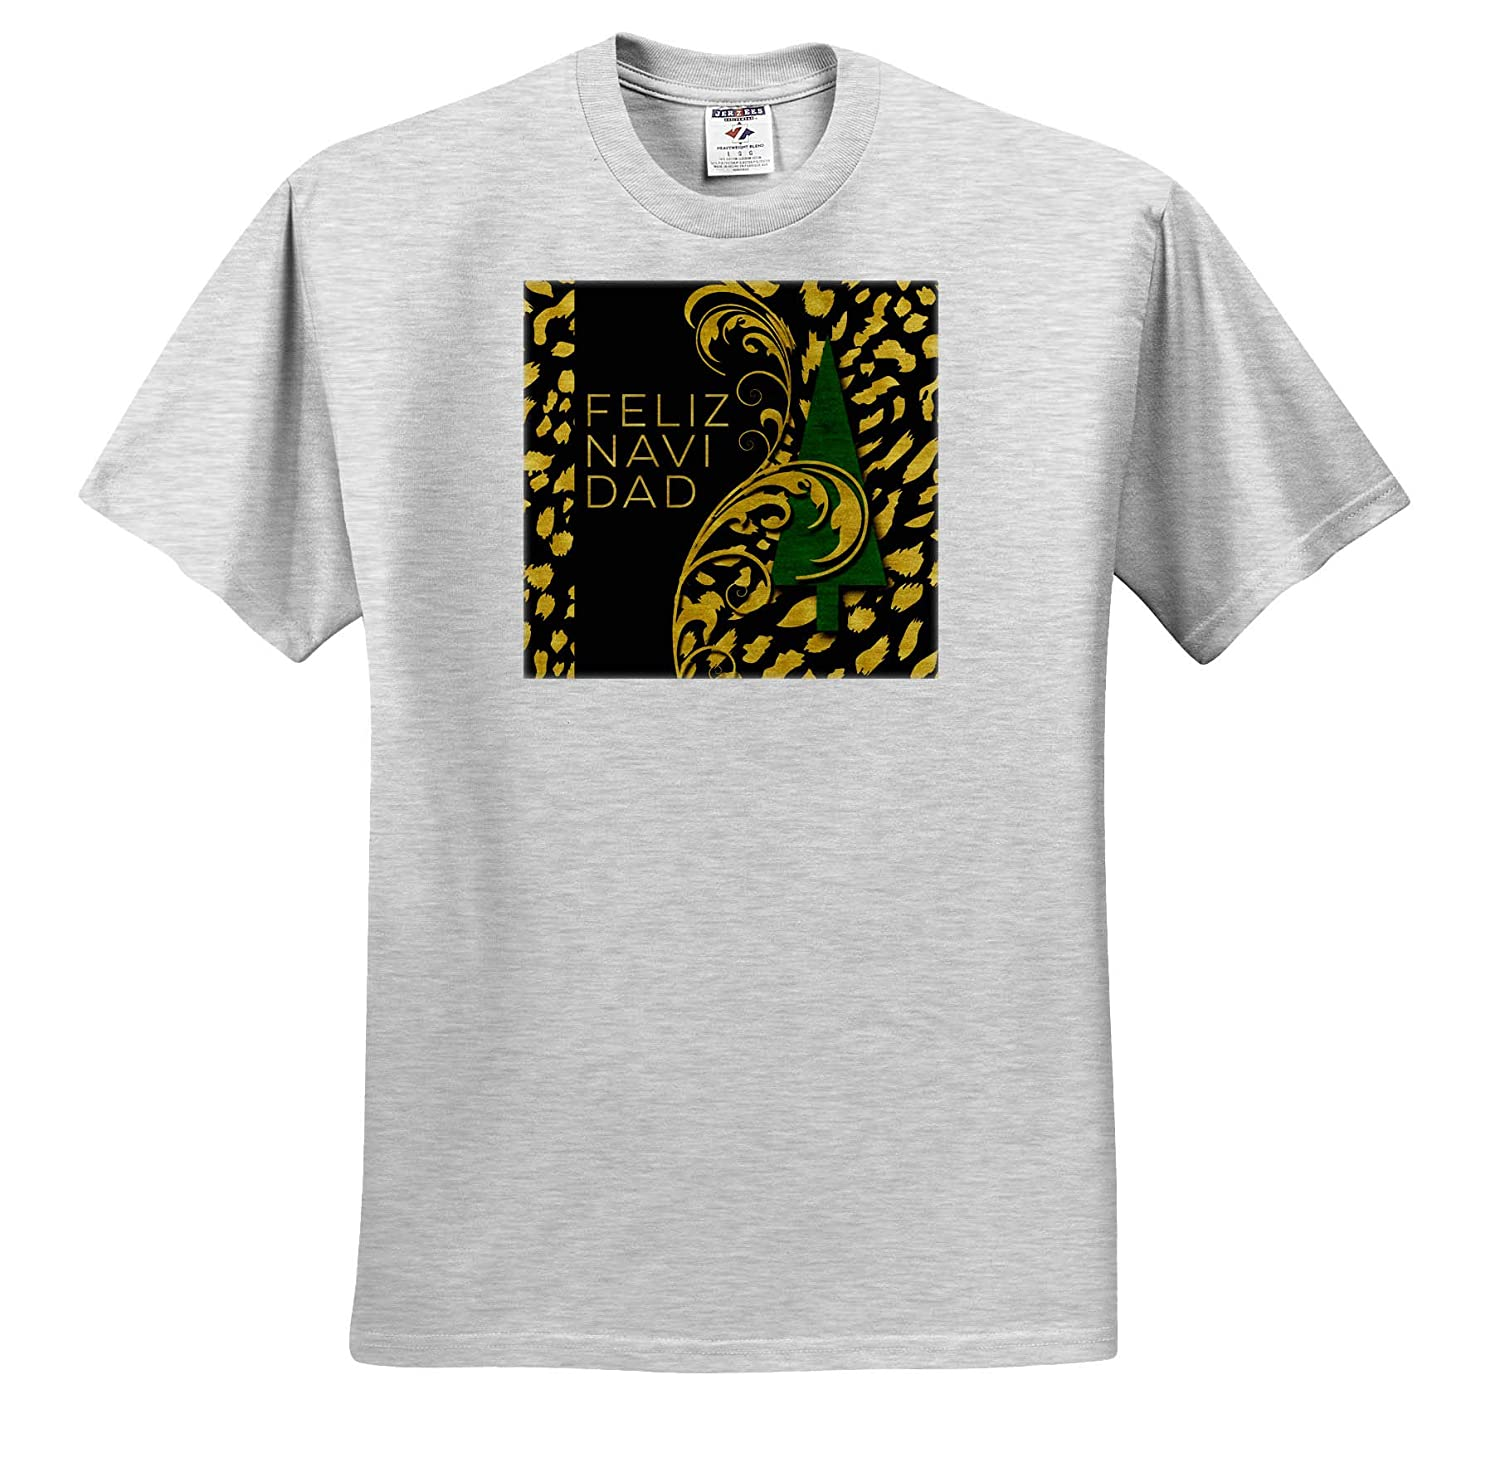 Spanish Feliz Navidad Green and Gold Christmas Tree ts/_319565 3dRose Doreen Erhardt Cultural Adult T-Shirt XL